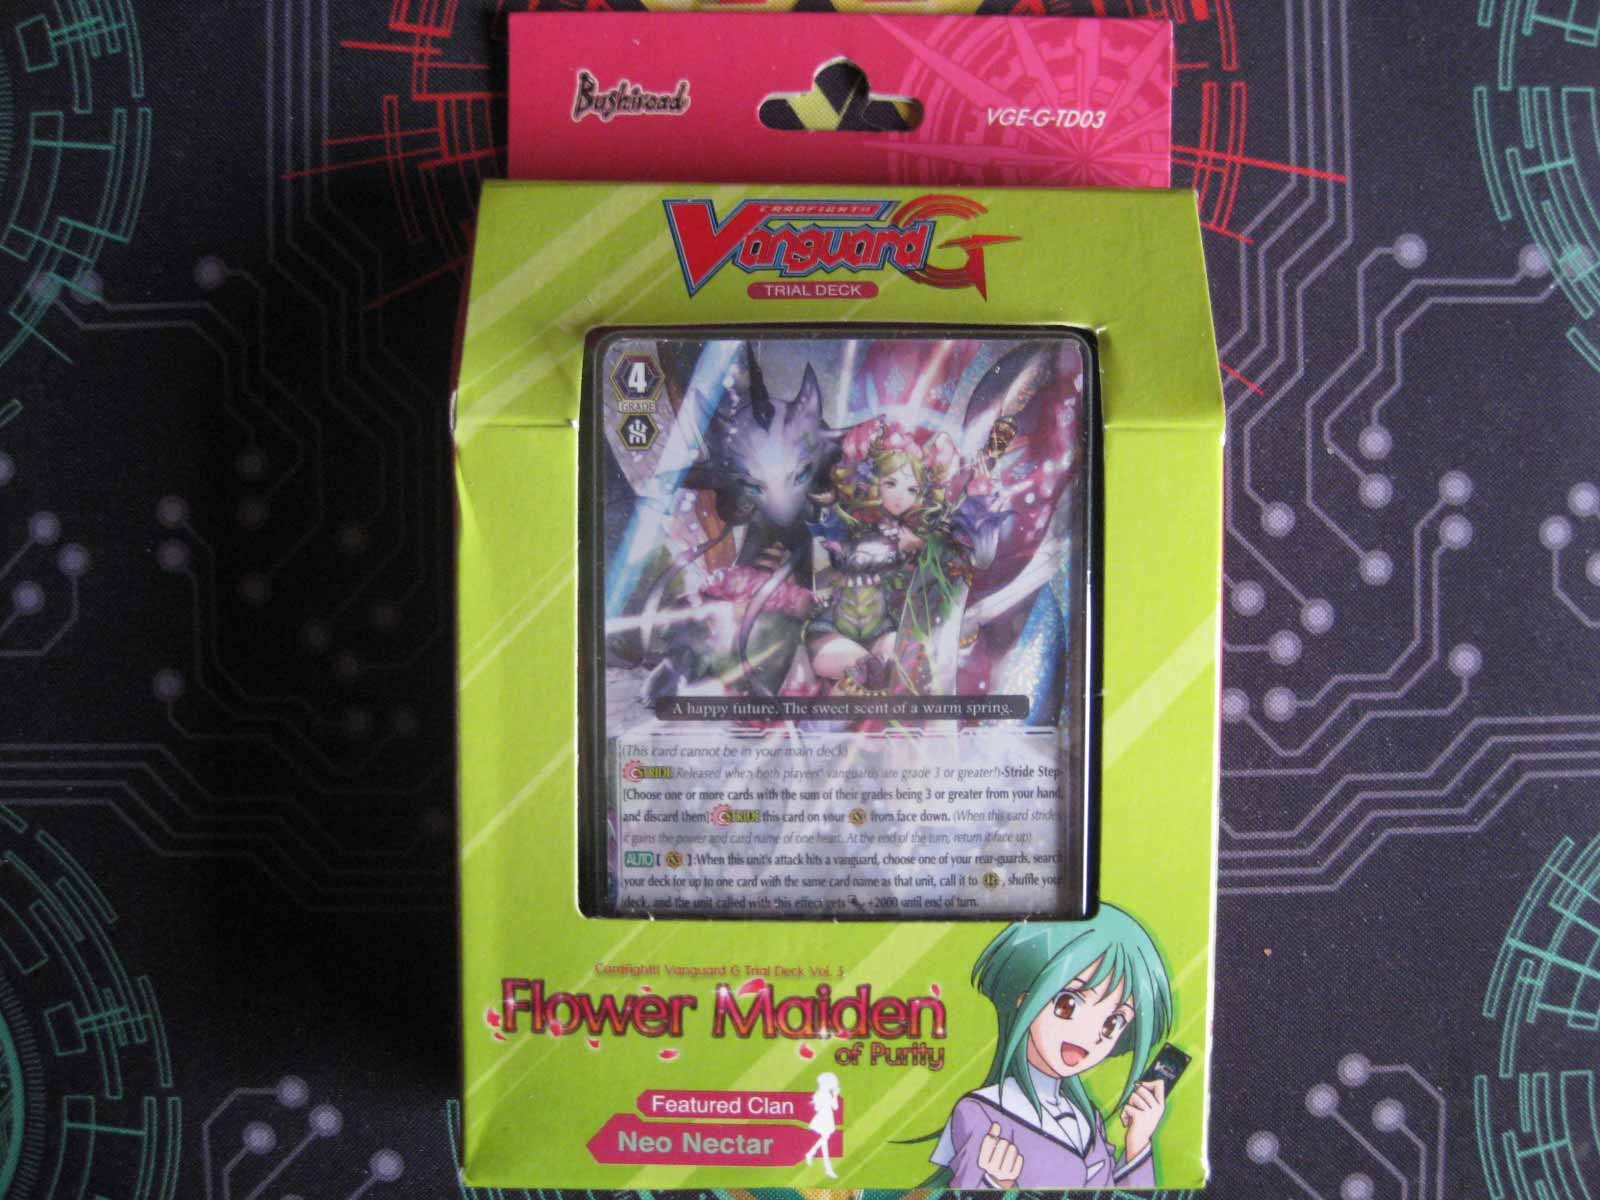 Trial Deck: Flower Maiden of Purity VGE-G-TD03